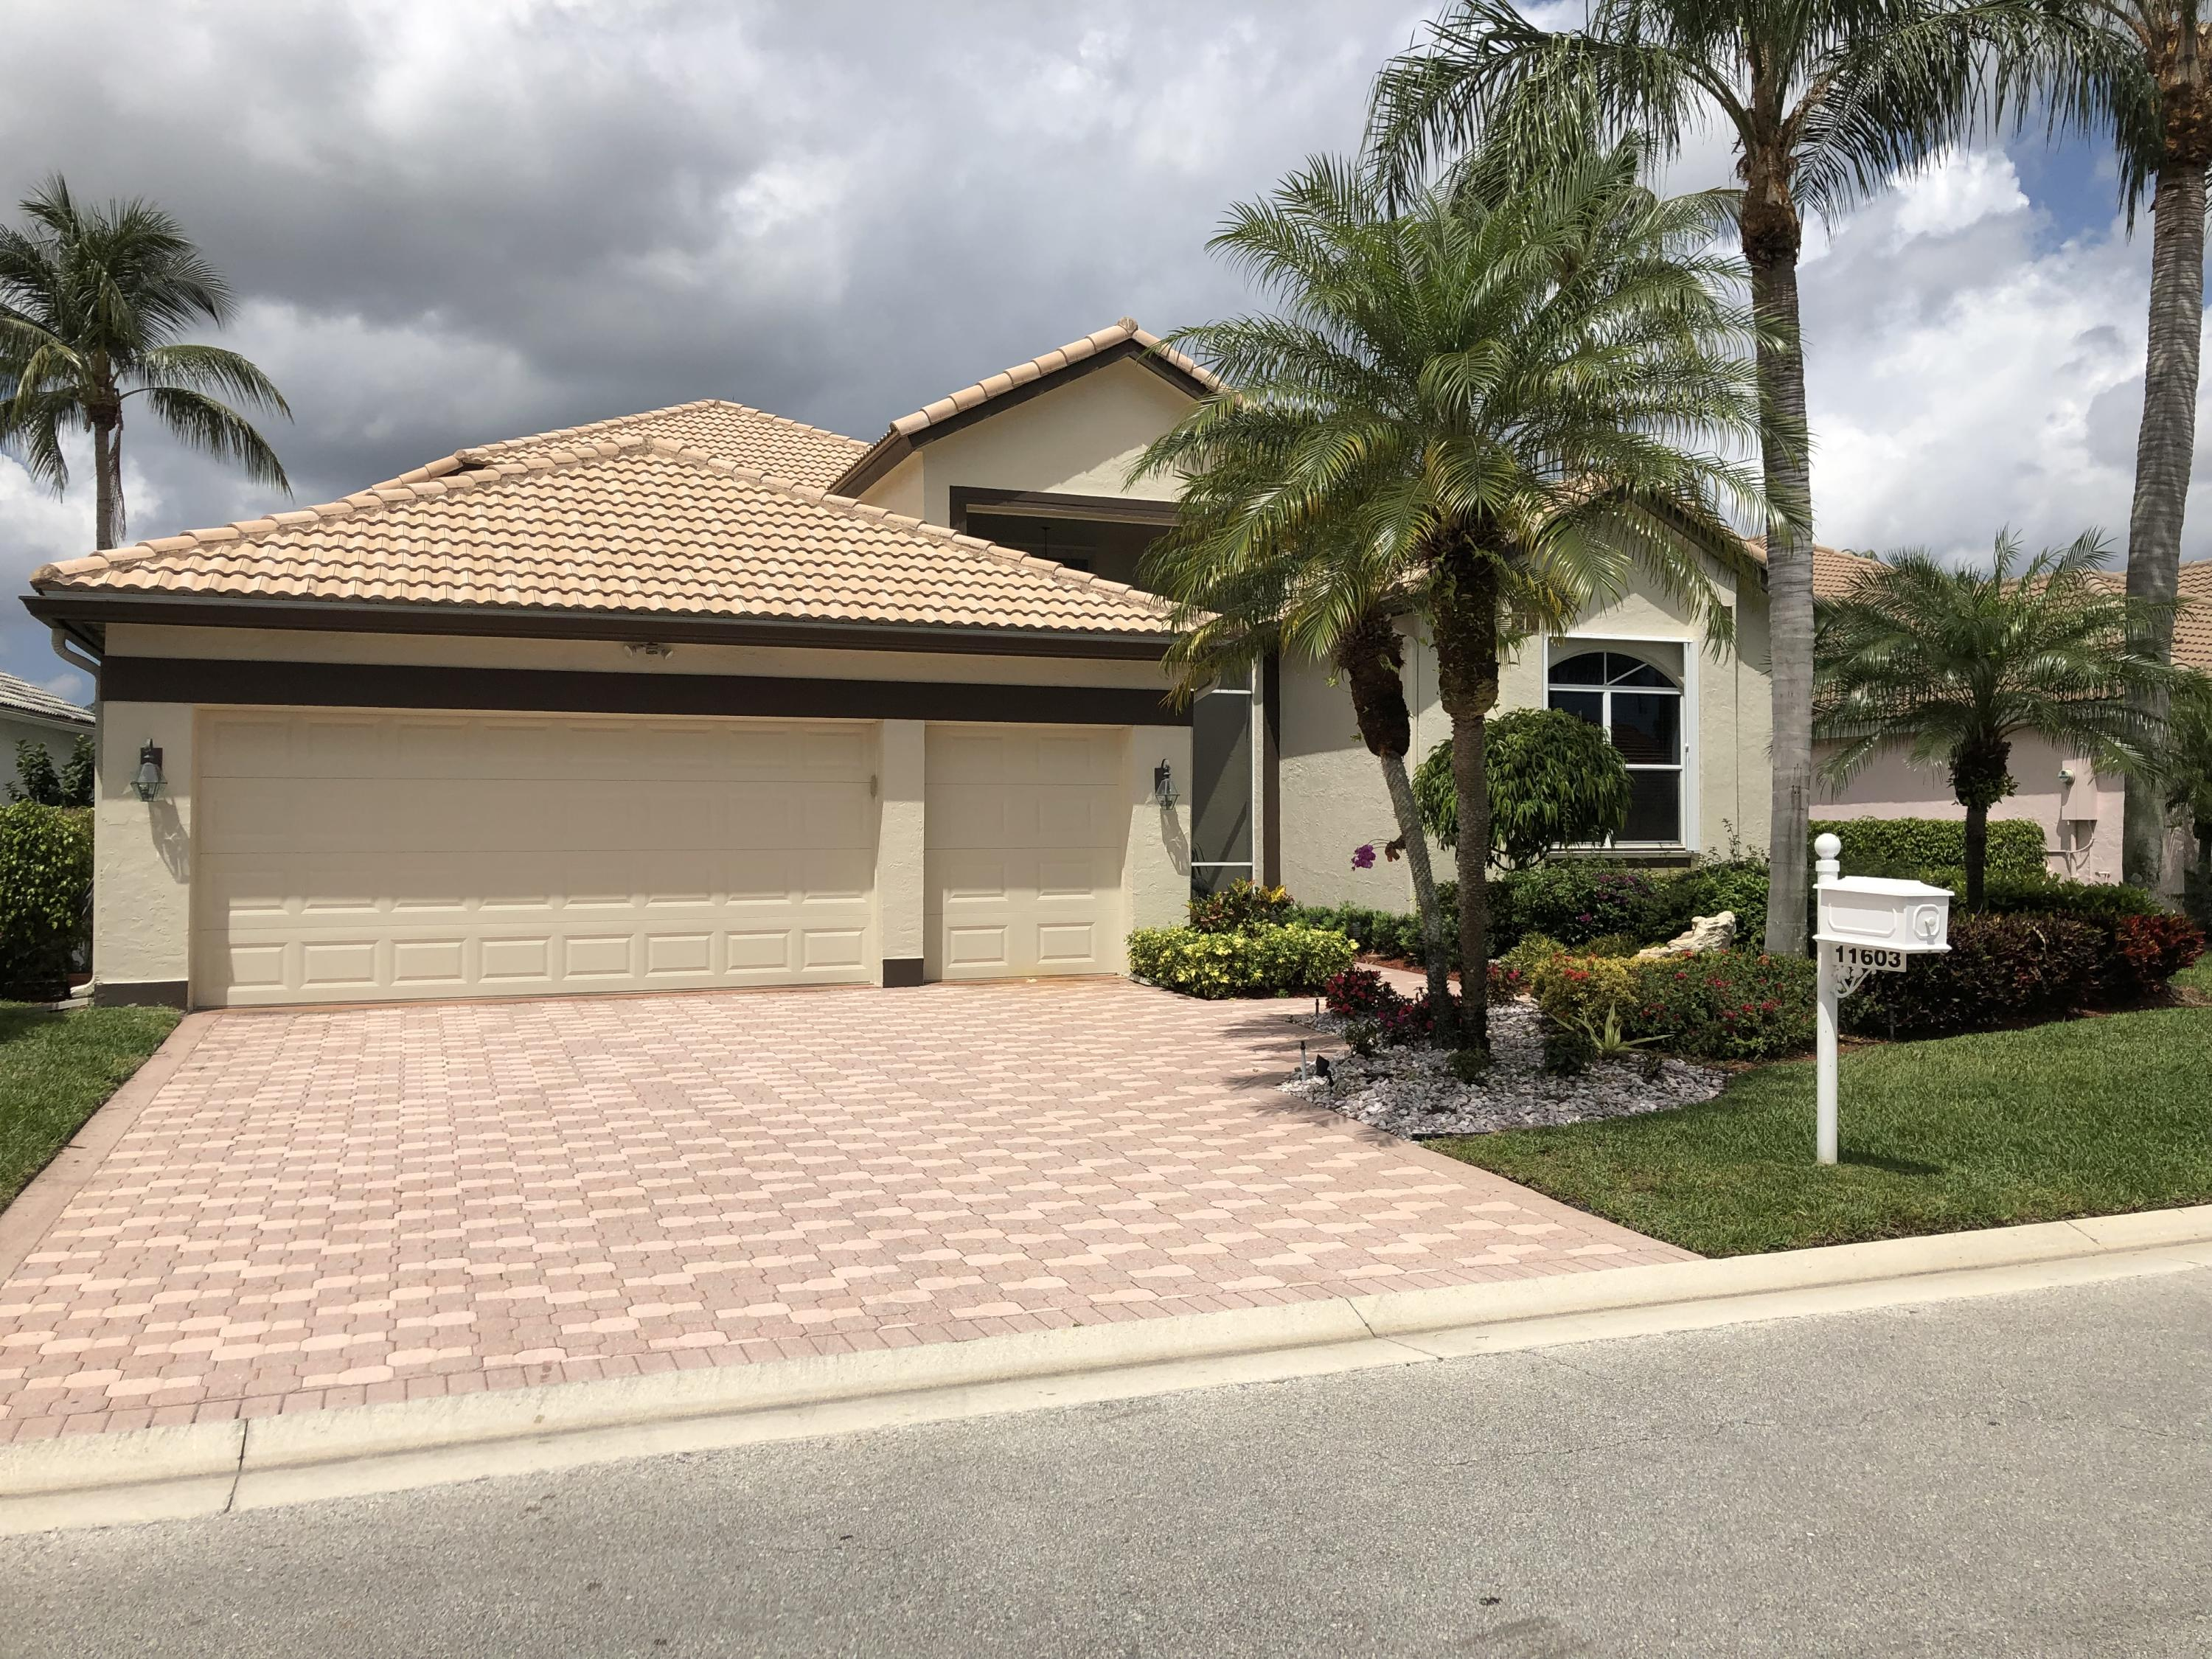 11603 Losano Drive Boynton Beach 33437 - photo